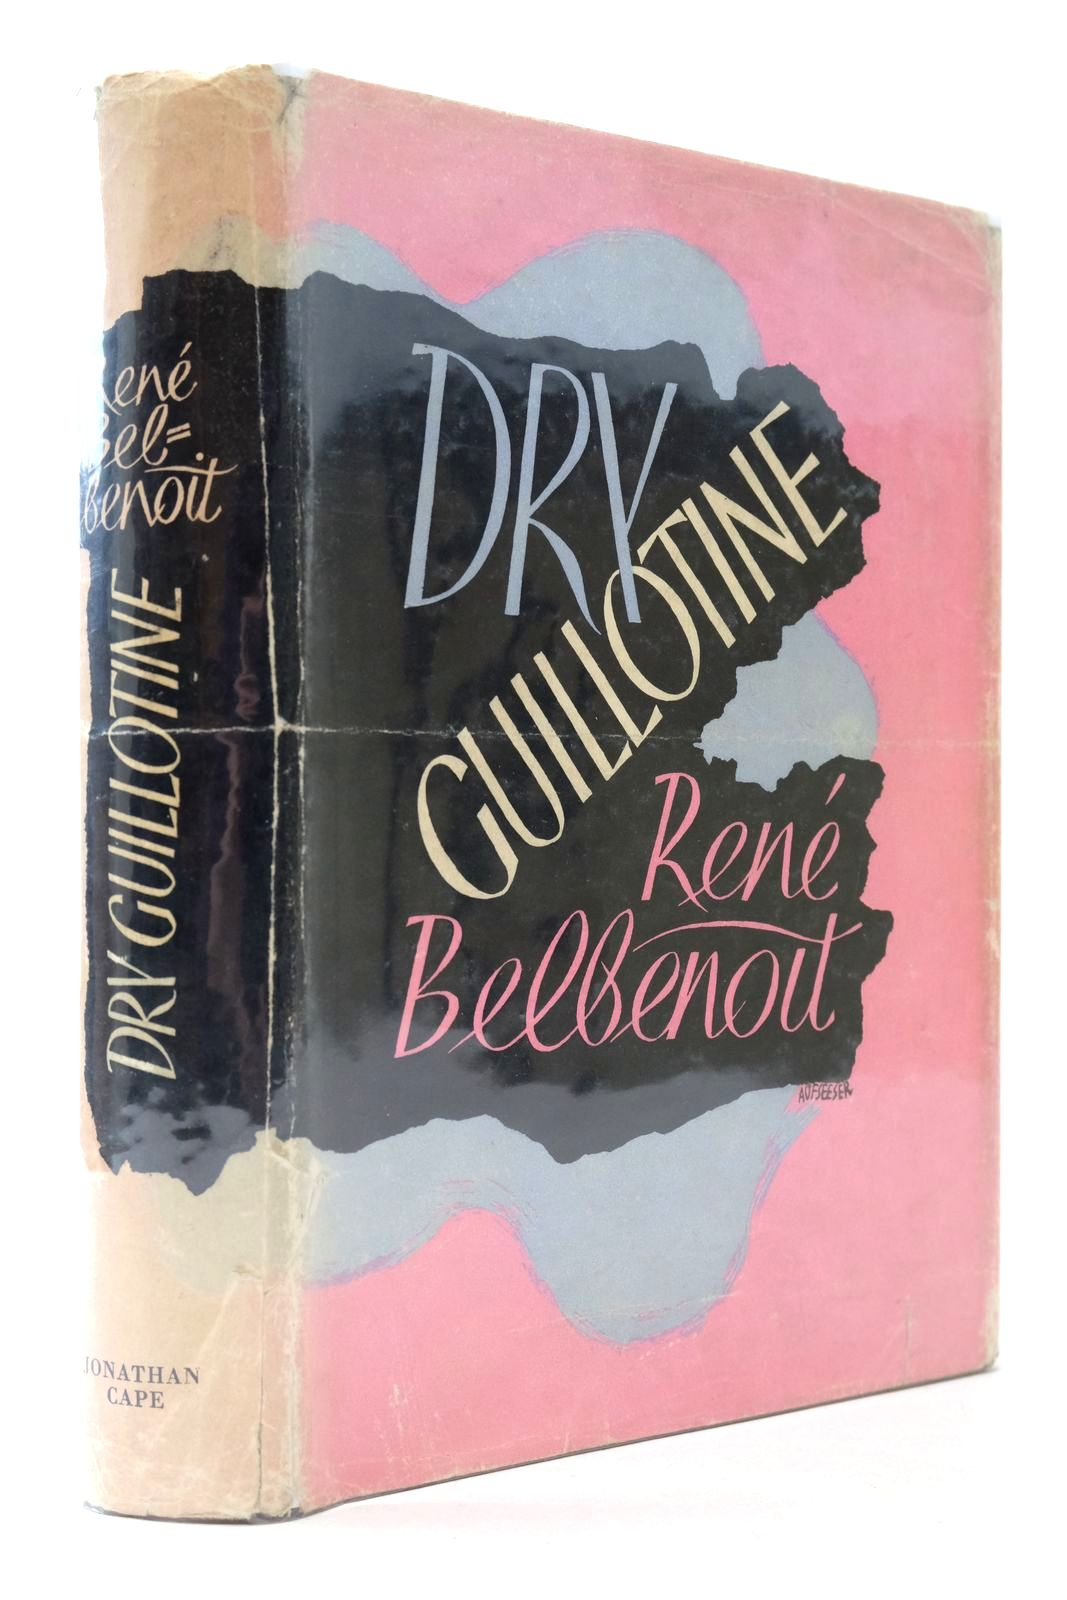 Photo of DRY GUILLOTINE written by Belbenoit, Rene published by Jonathan Cape (STOCK CODE: 2133299)  for sale by Stella & Rose's Books